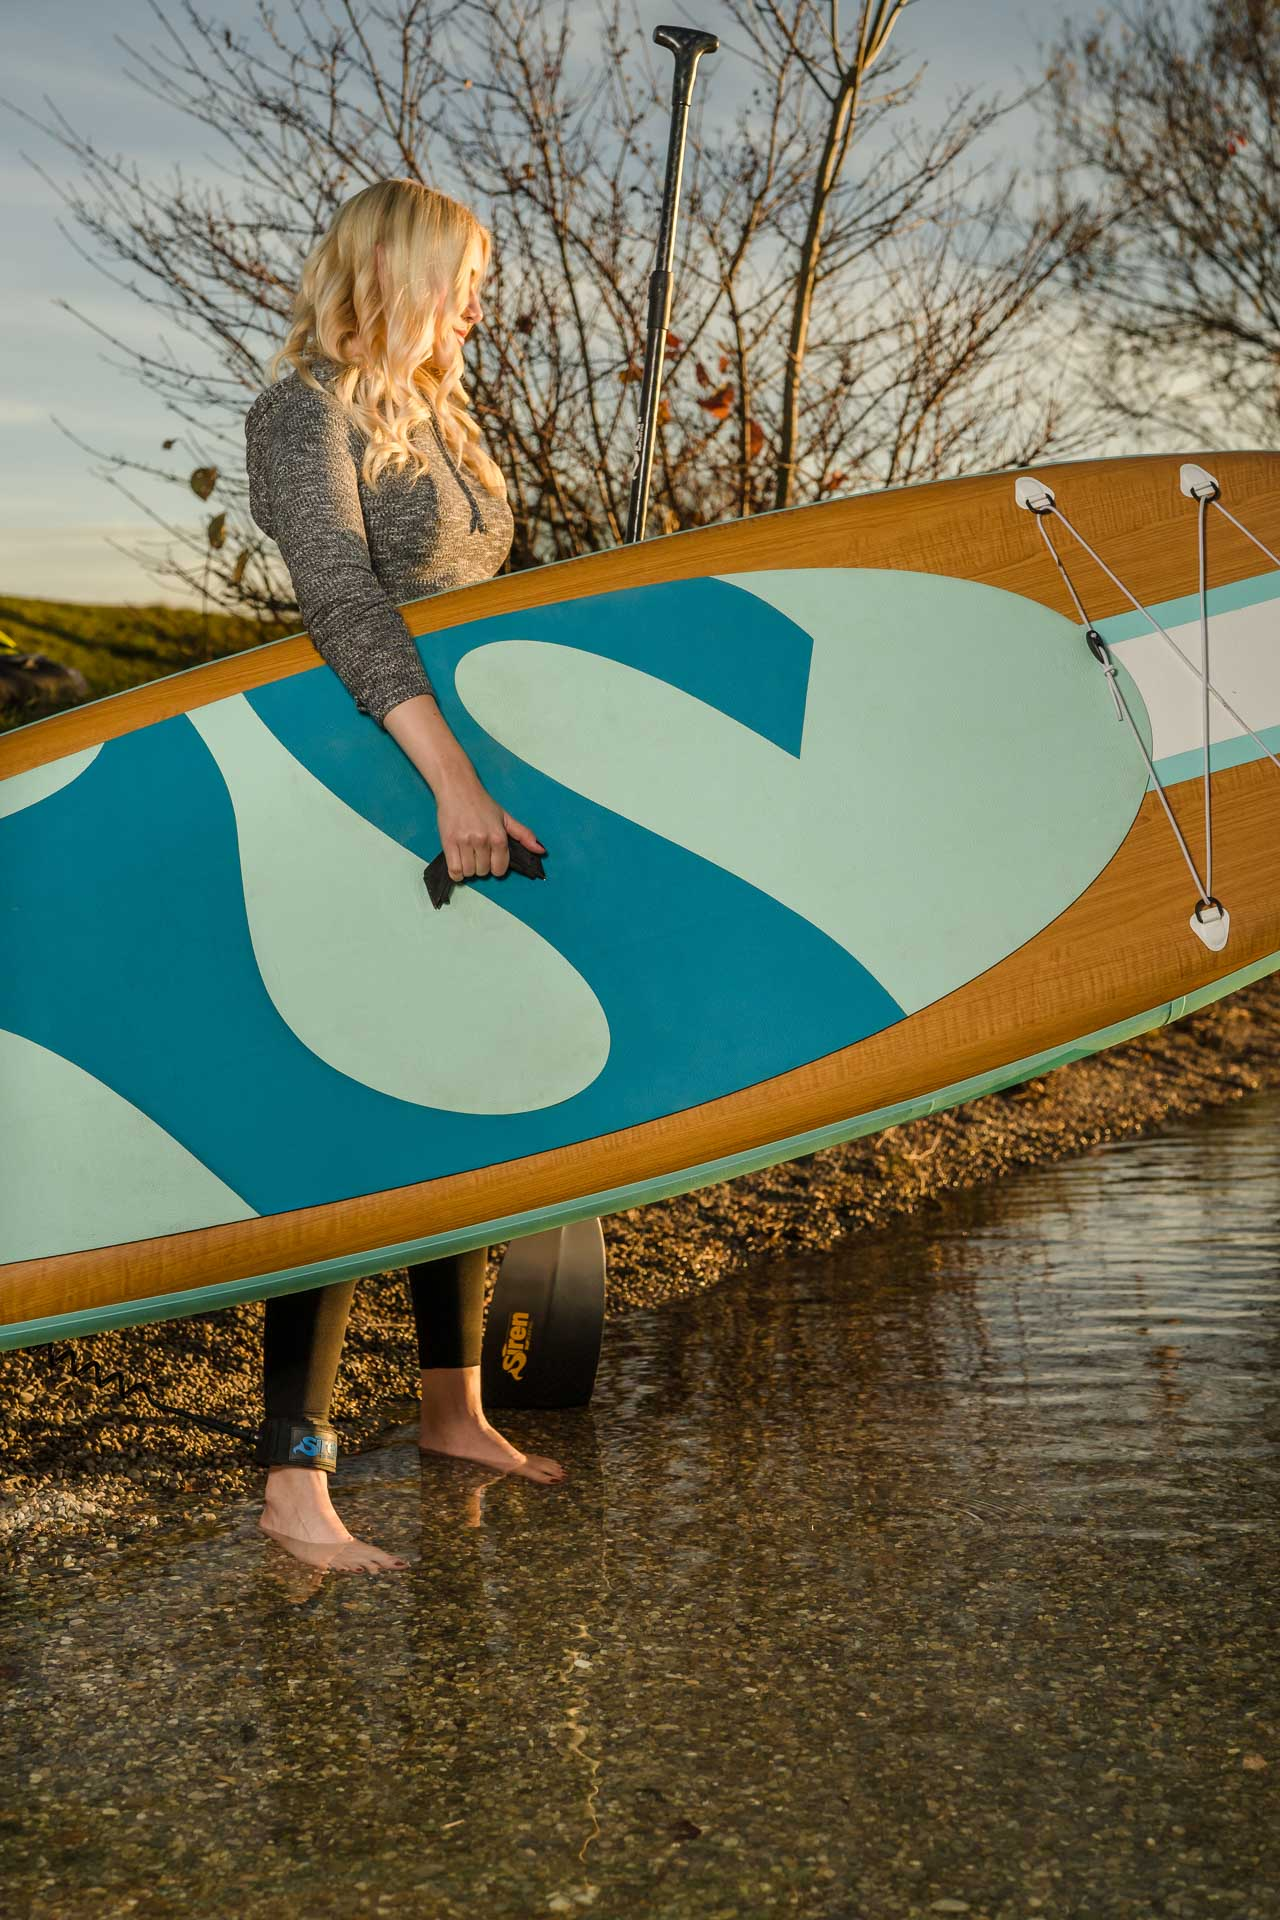 SUP (Stand Up Paddling) in Bavaria at sunset